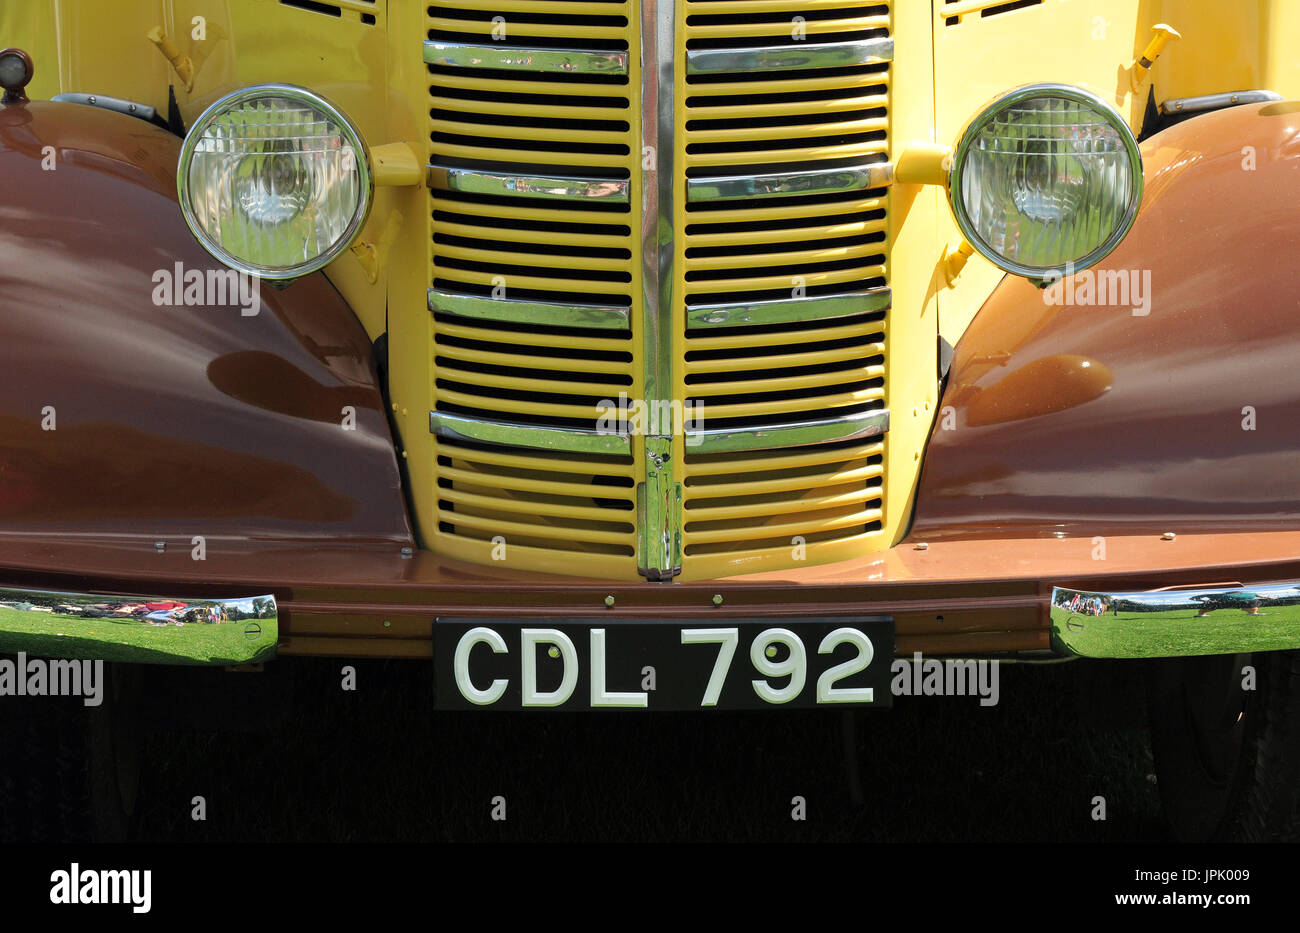 Displaying Old Cars Stock Photos & Displaying Old Cars Stock Images ...